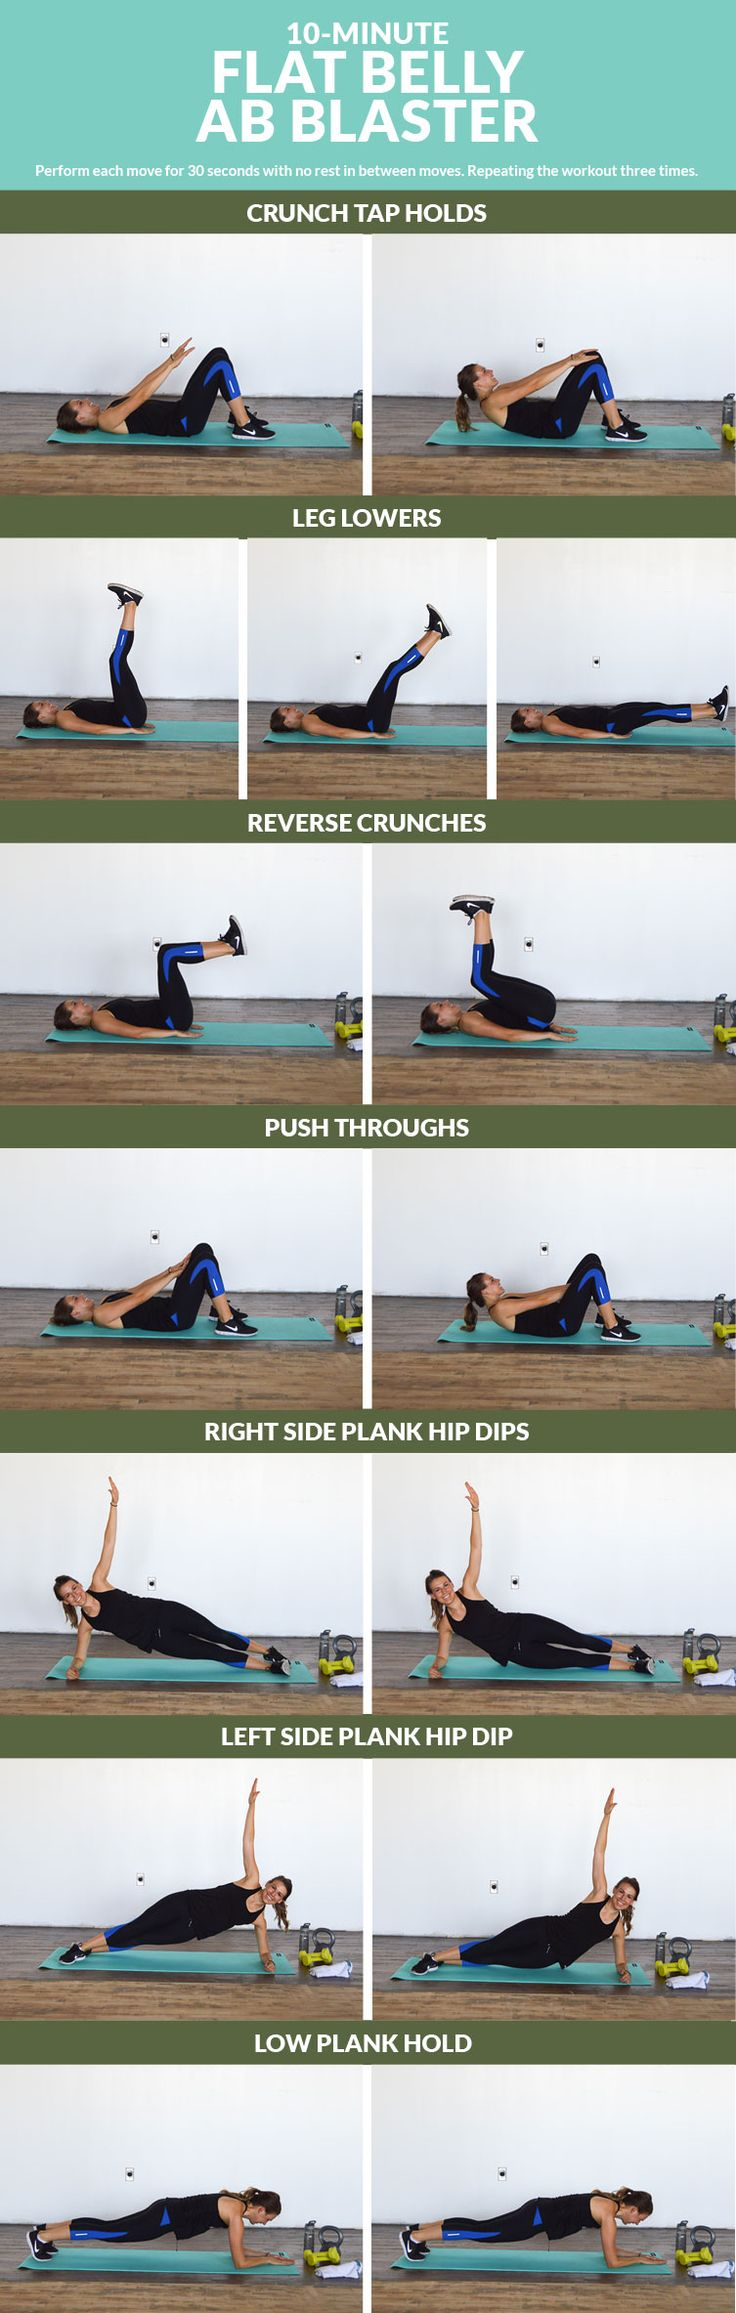 Flat Belly Ab Blaster - Work on that six pack with these 7 moves to tone and tighten your tummy!